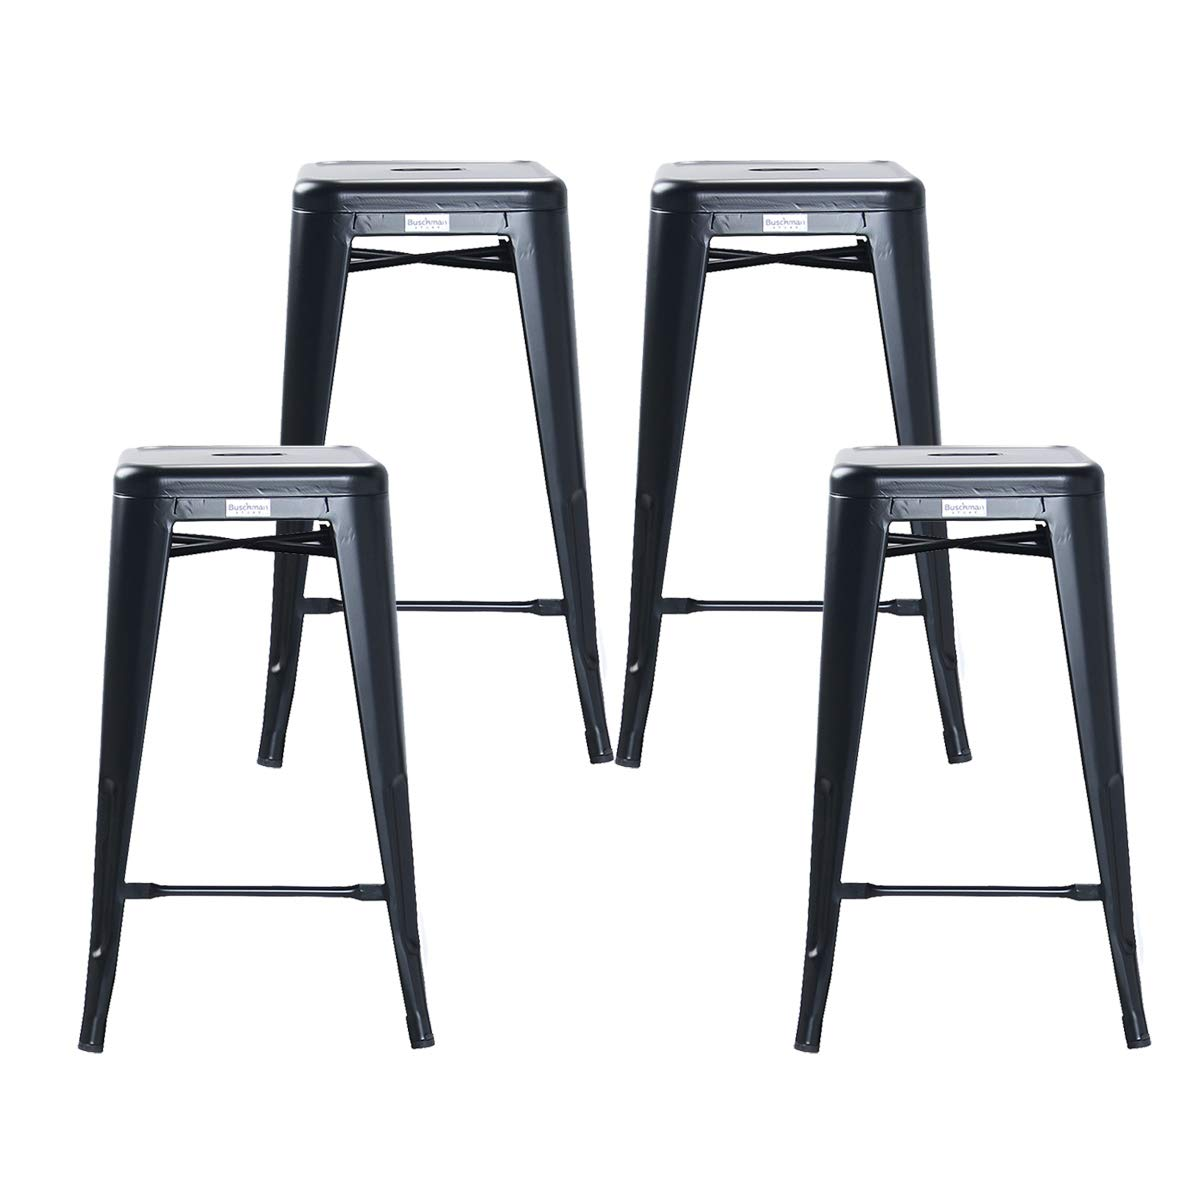 Buschman Set of 4 Matte Black 26 Inch Counter Height Metal Bar Stools, Indoor/Outdoor, Stackable by Buschman Store